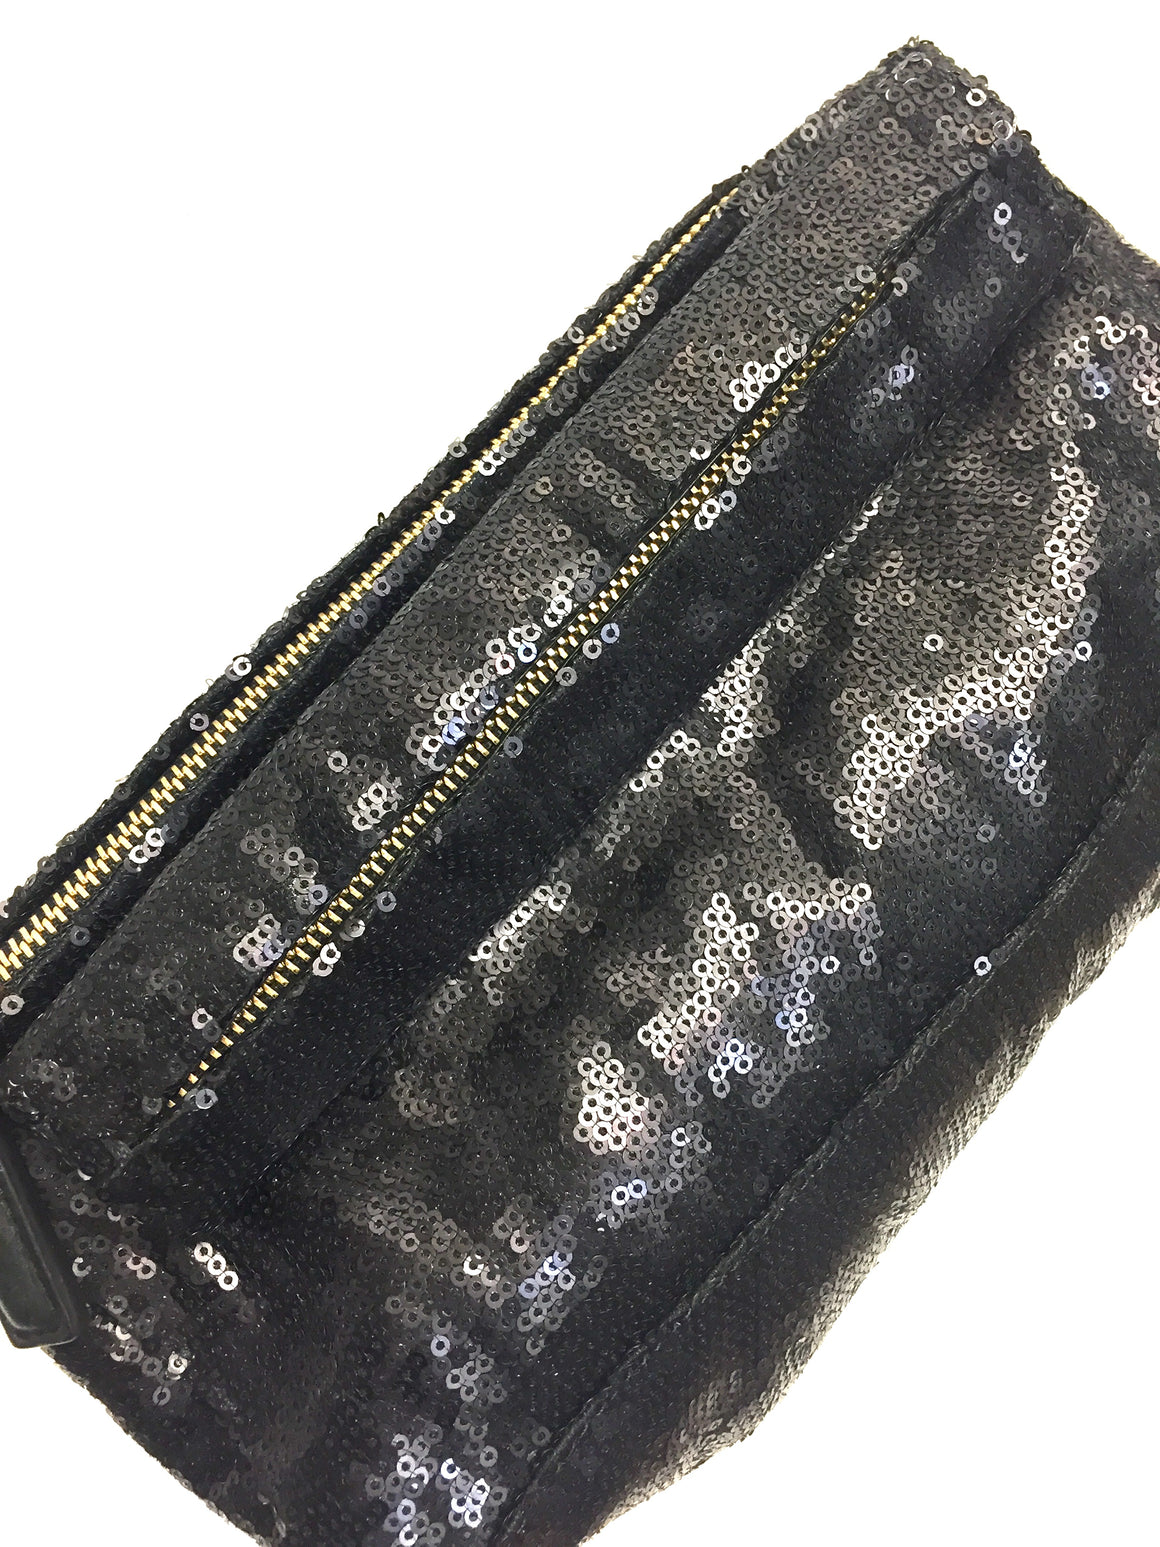 GIVENCHY Black Sequin-Embroidered PANDORA Evening Clutch Bag